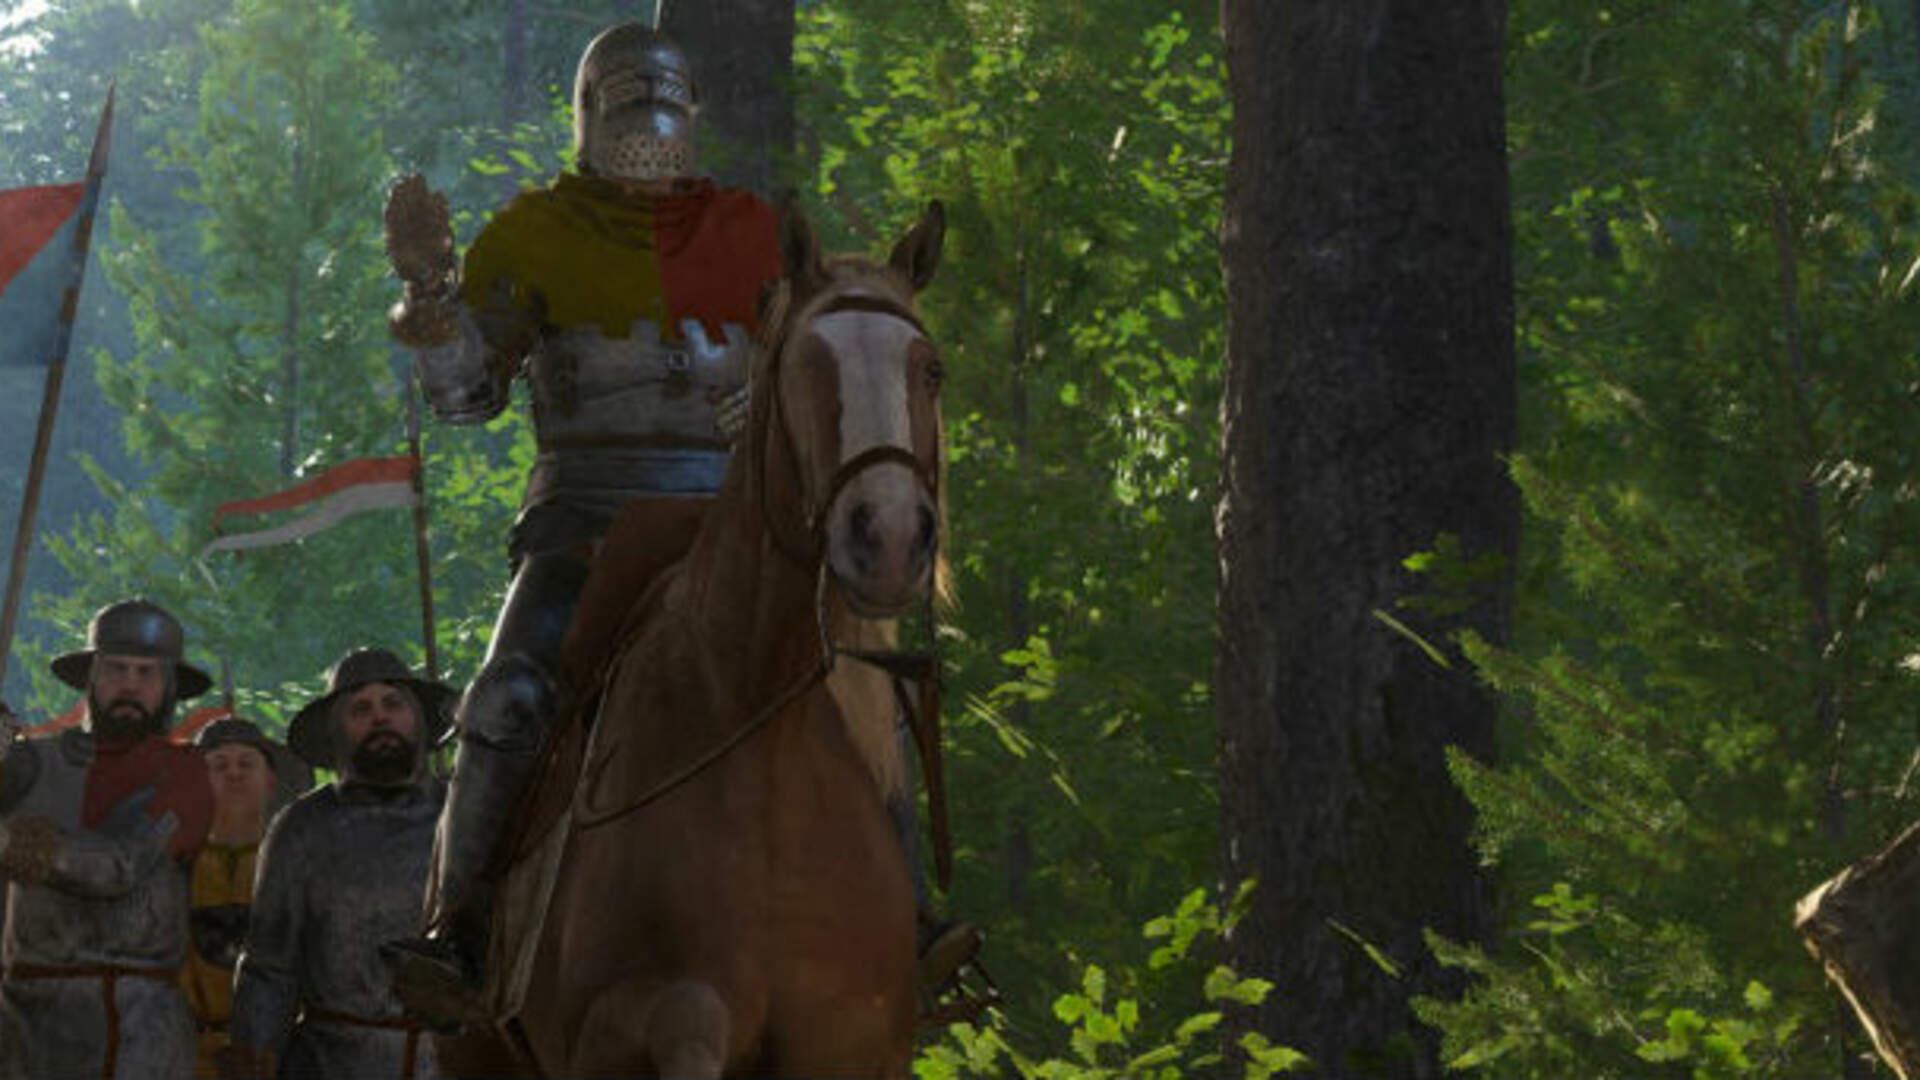 Upcoming Patches for Kingdom Come: Deliverance Promise Easier Saving, Better Lockpicking, and a Real Big Bug-Squash